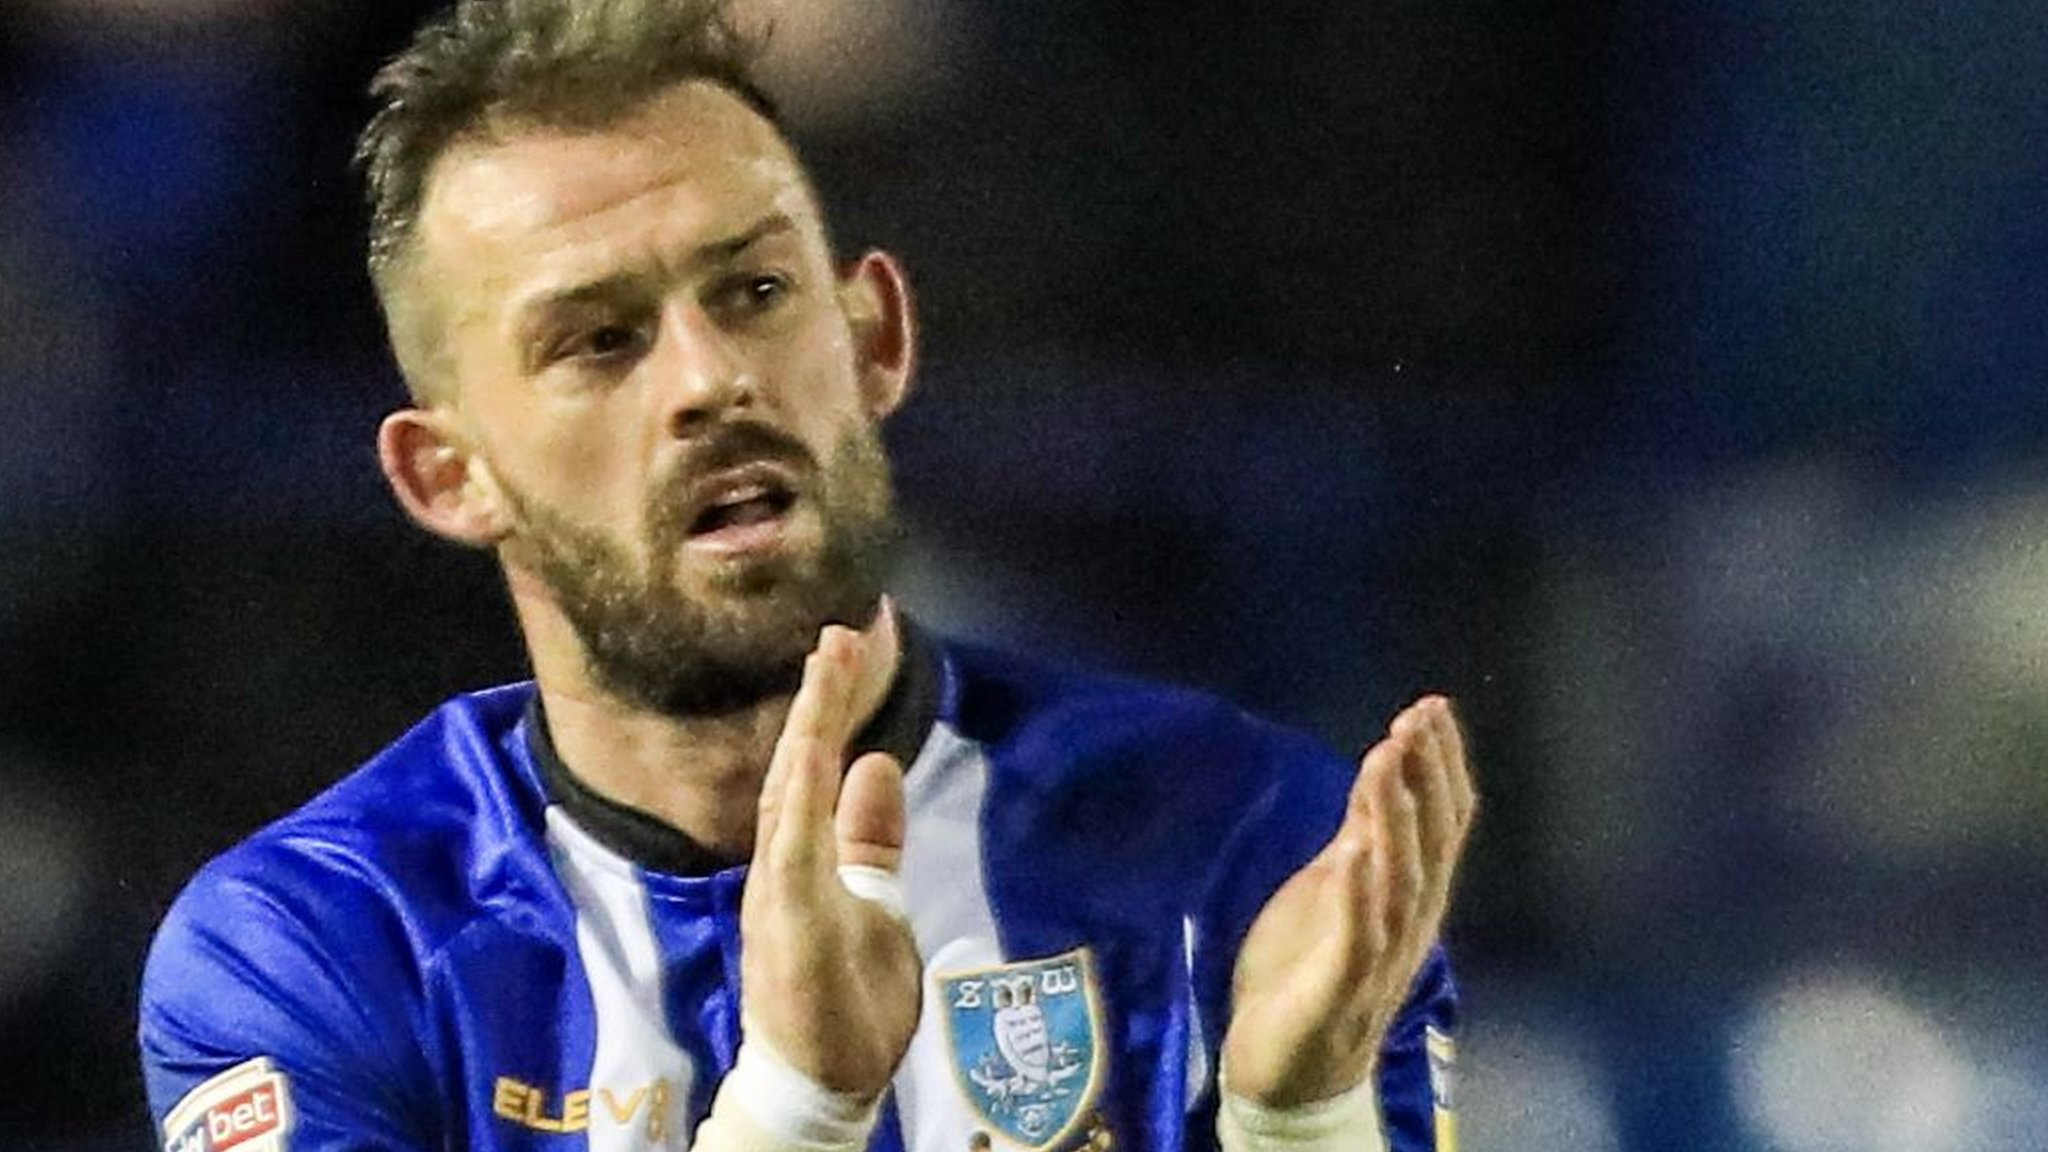 Sheffield Wednesday 1-0 Wigan Athletic: Fletcher strike gives Owls first 2019 win